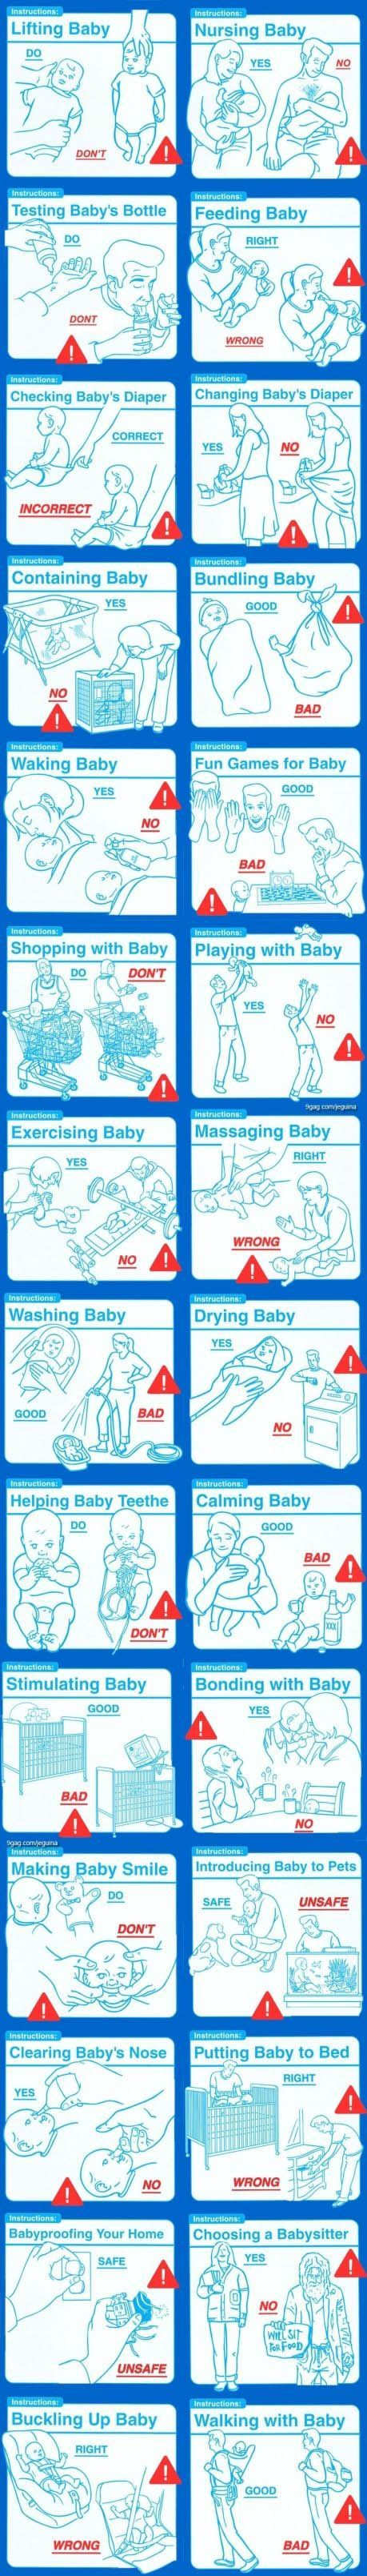 How to care for your new baby.